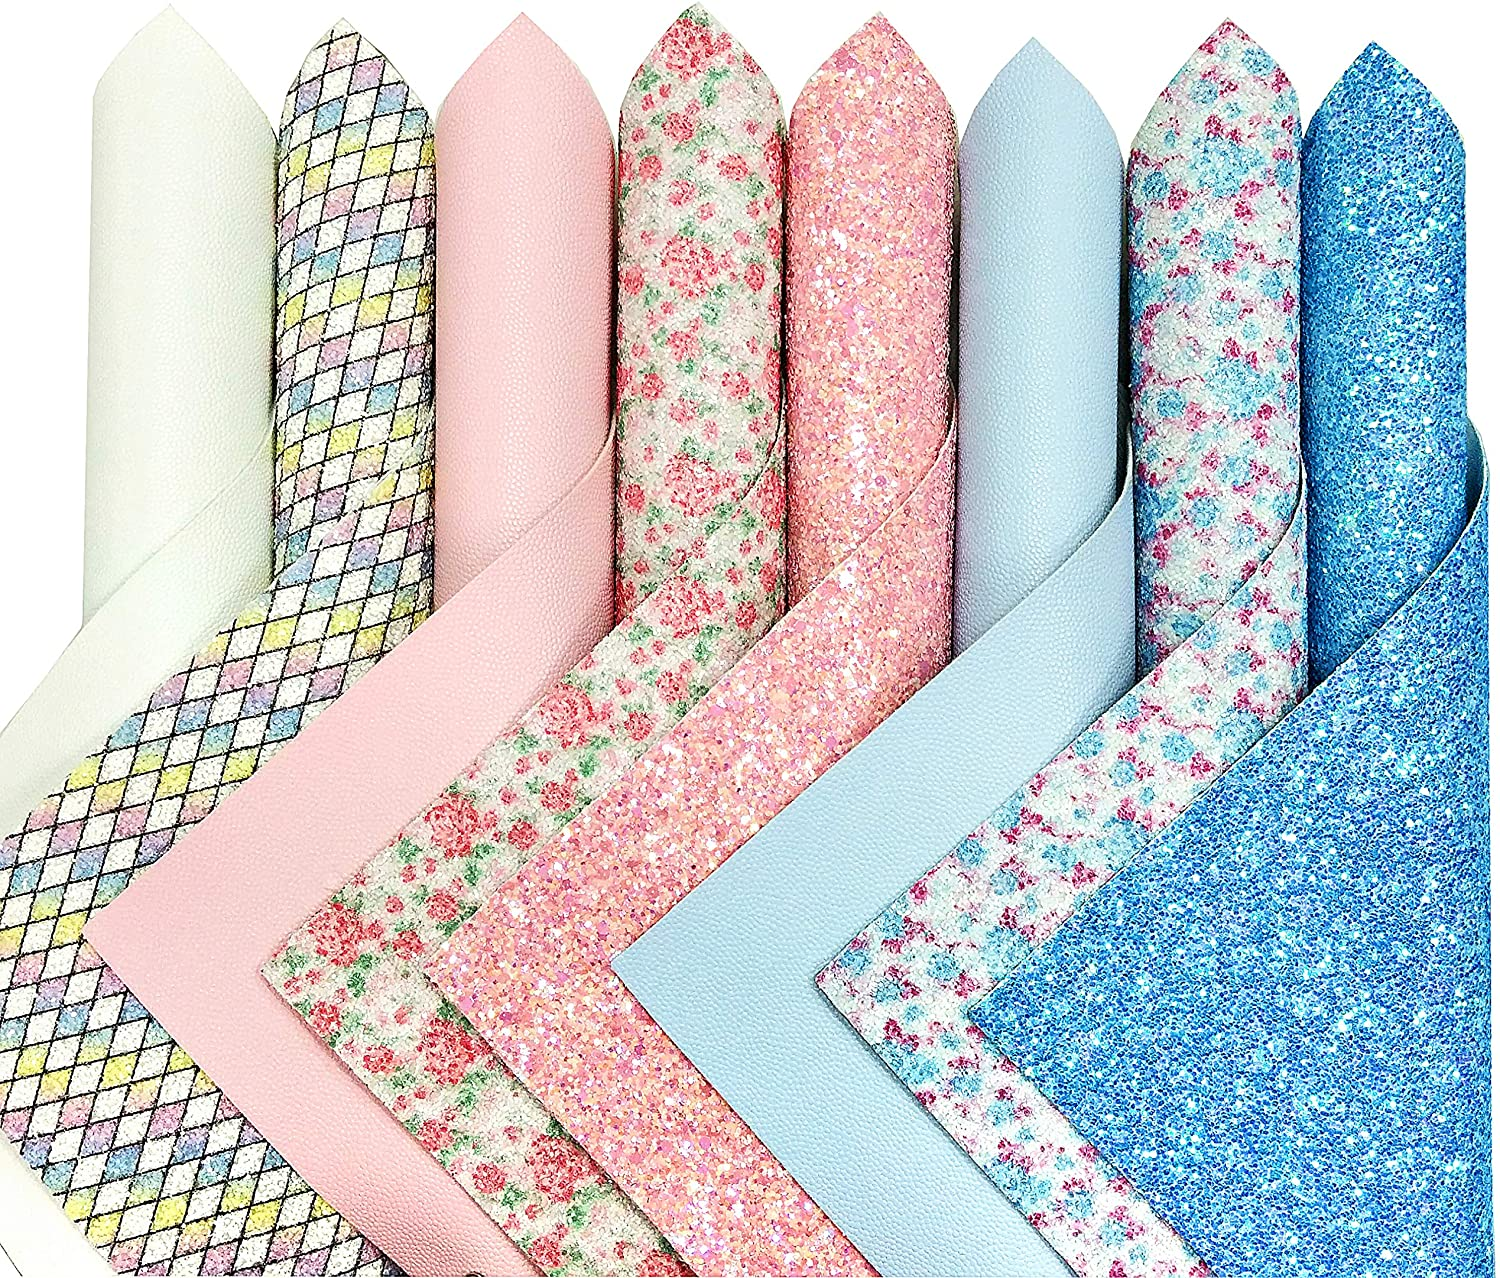 ZAIONE New Contrast Color Blue & Pink Series Faux Leather Sheets Bundle 8pcs/Set 8 x 12 Mixed Colors Solid Litchi & Floral Glitter Sheets for Earring Bows Making DIY Crafts